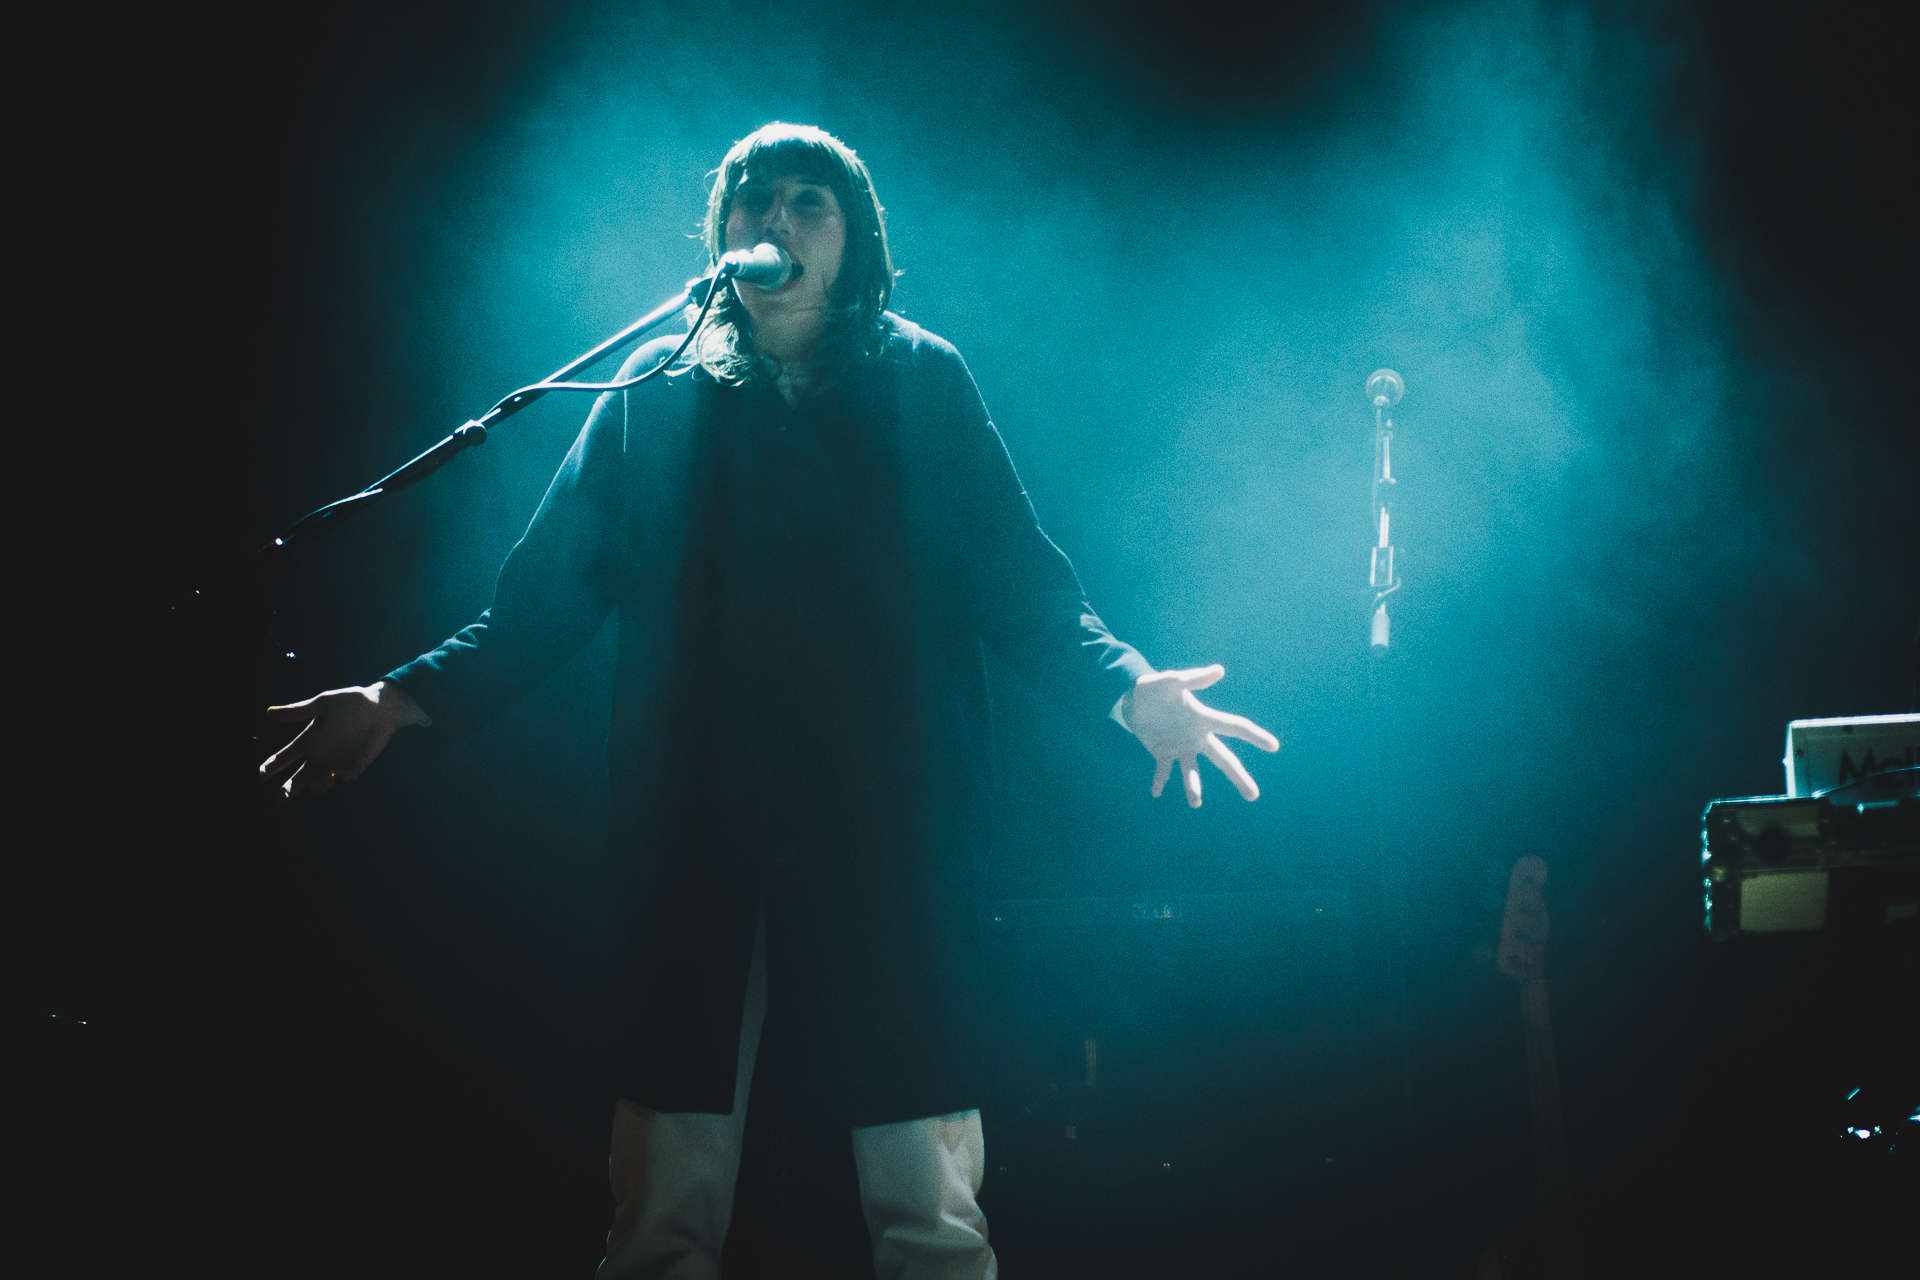 Aldous Harding at the Islington Assembly Hall